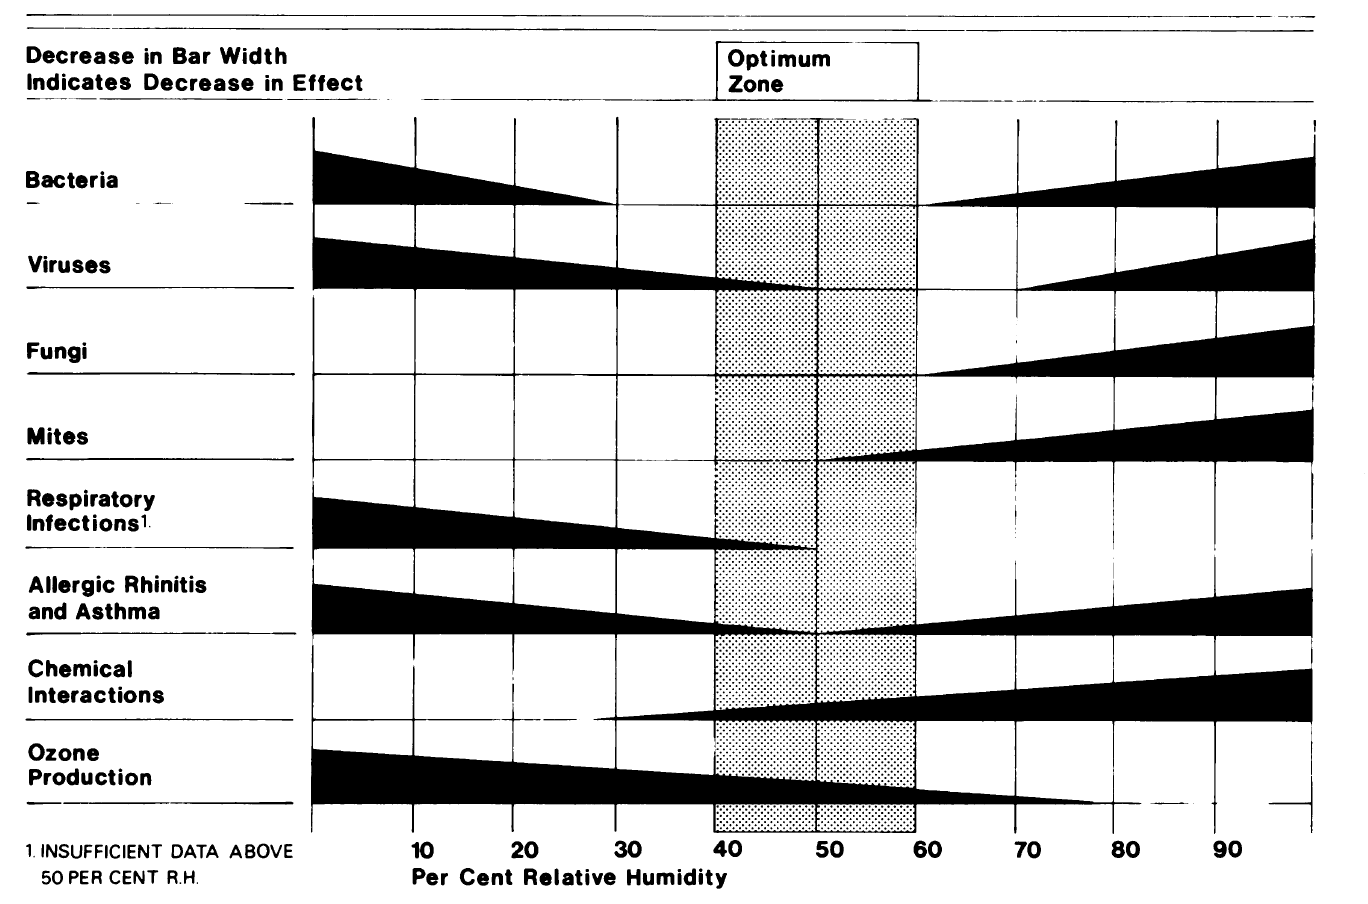 The Sterling chart, from a 1986 research paper, suggests an optimum zone for relative humidity